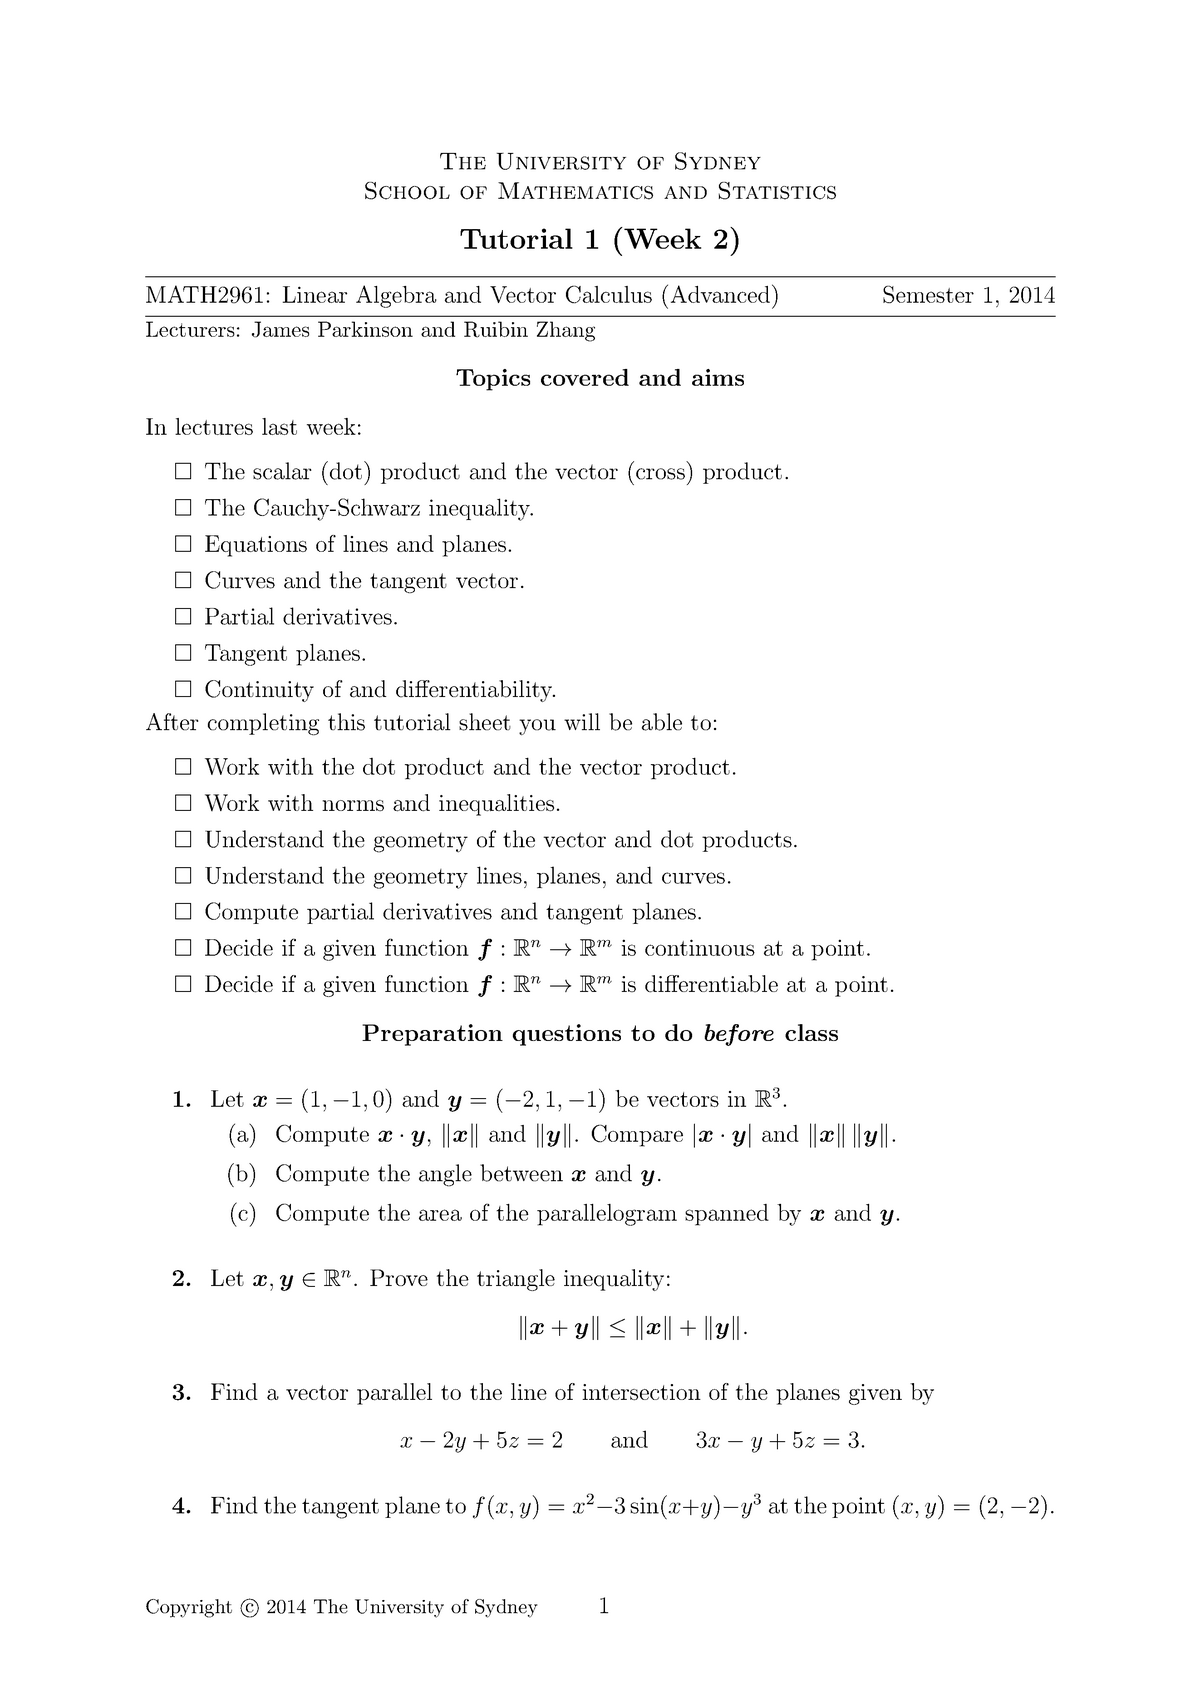 Tutorial work - tutorial worksheet questions - MATH2961